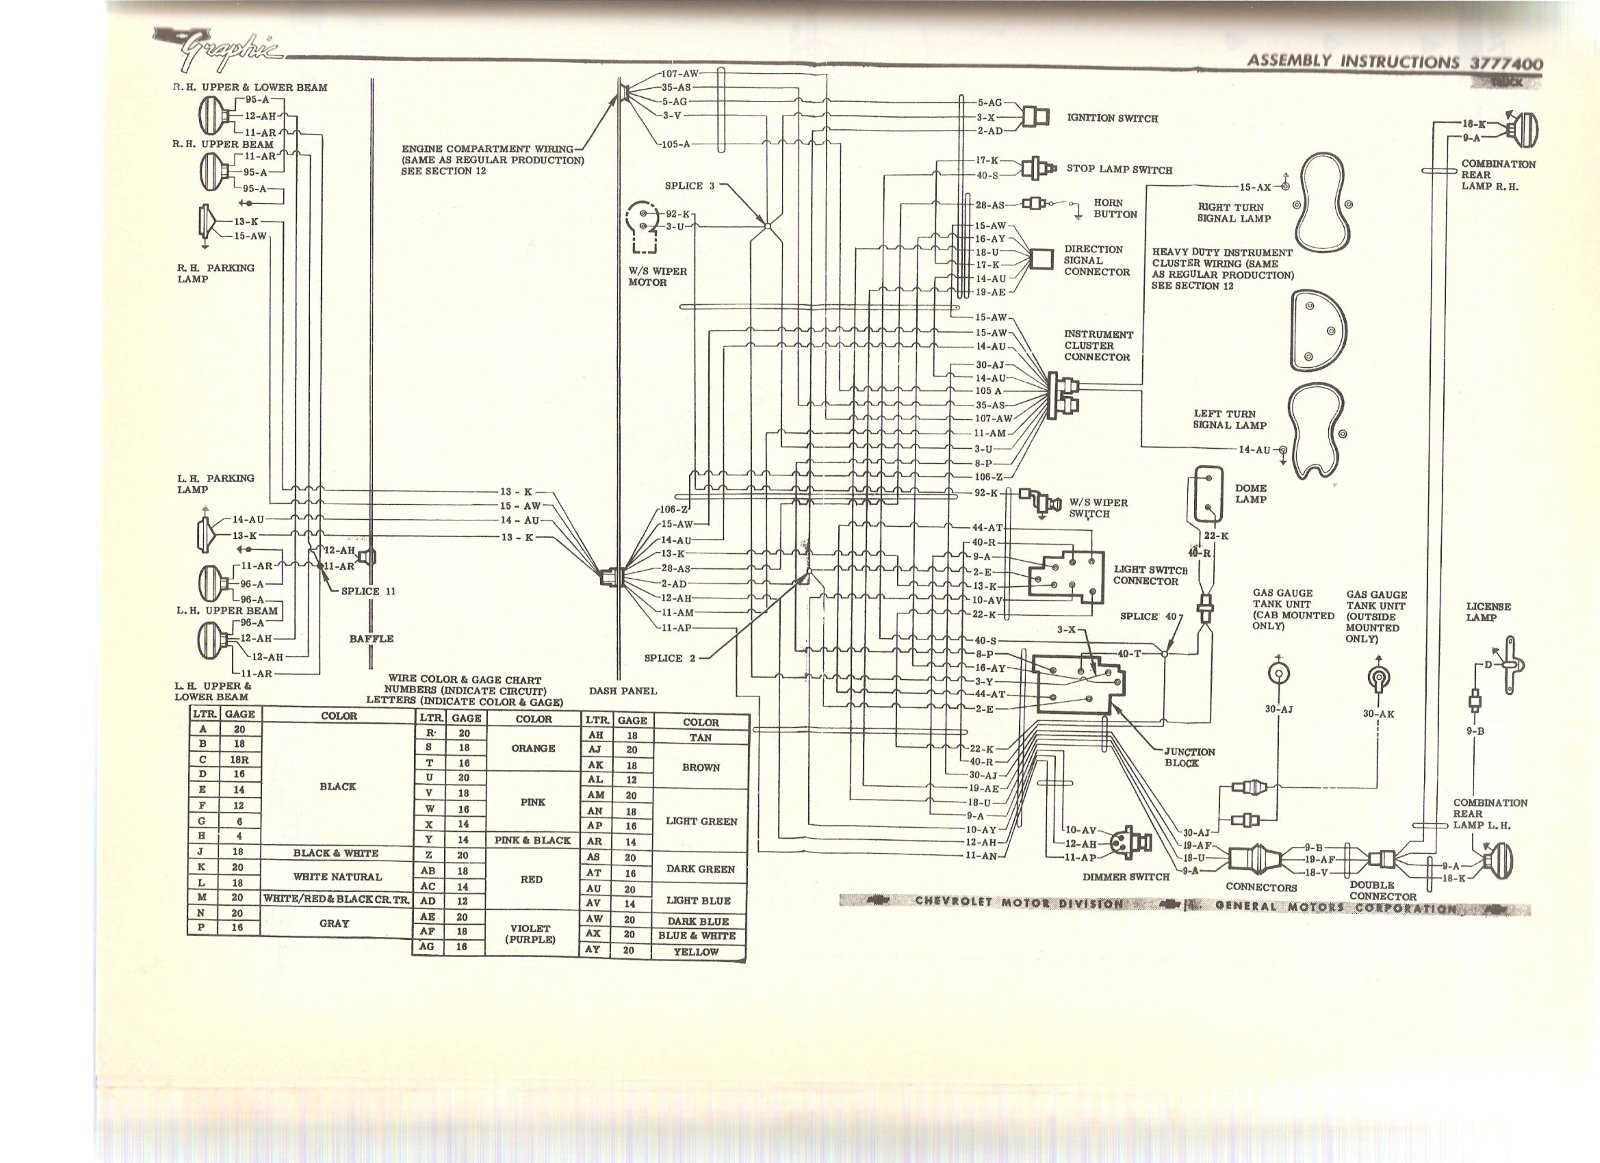 1980 chevy silverado wiring diagram images 1992 chevy alternator 1972 chevy c10 wiring diagram vin decoder chart number